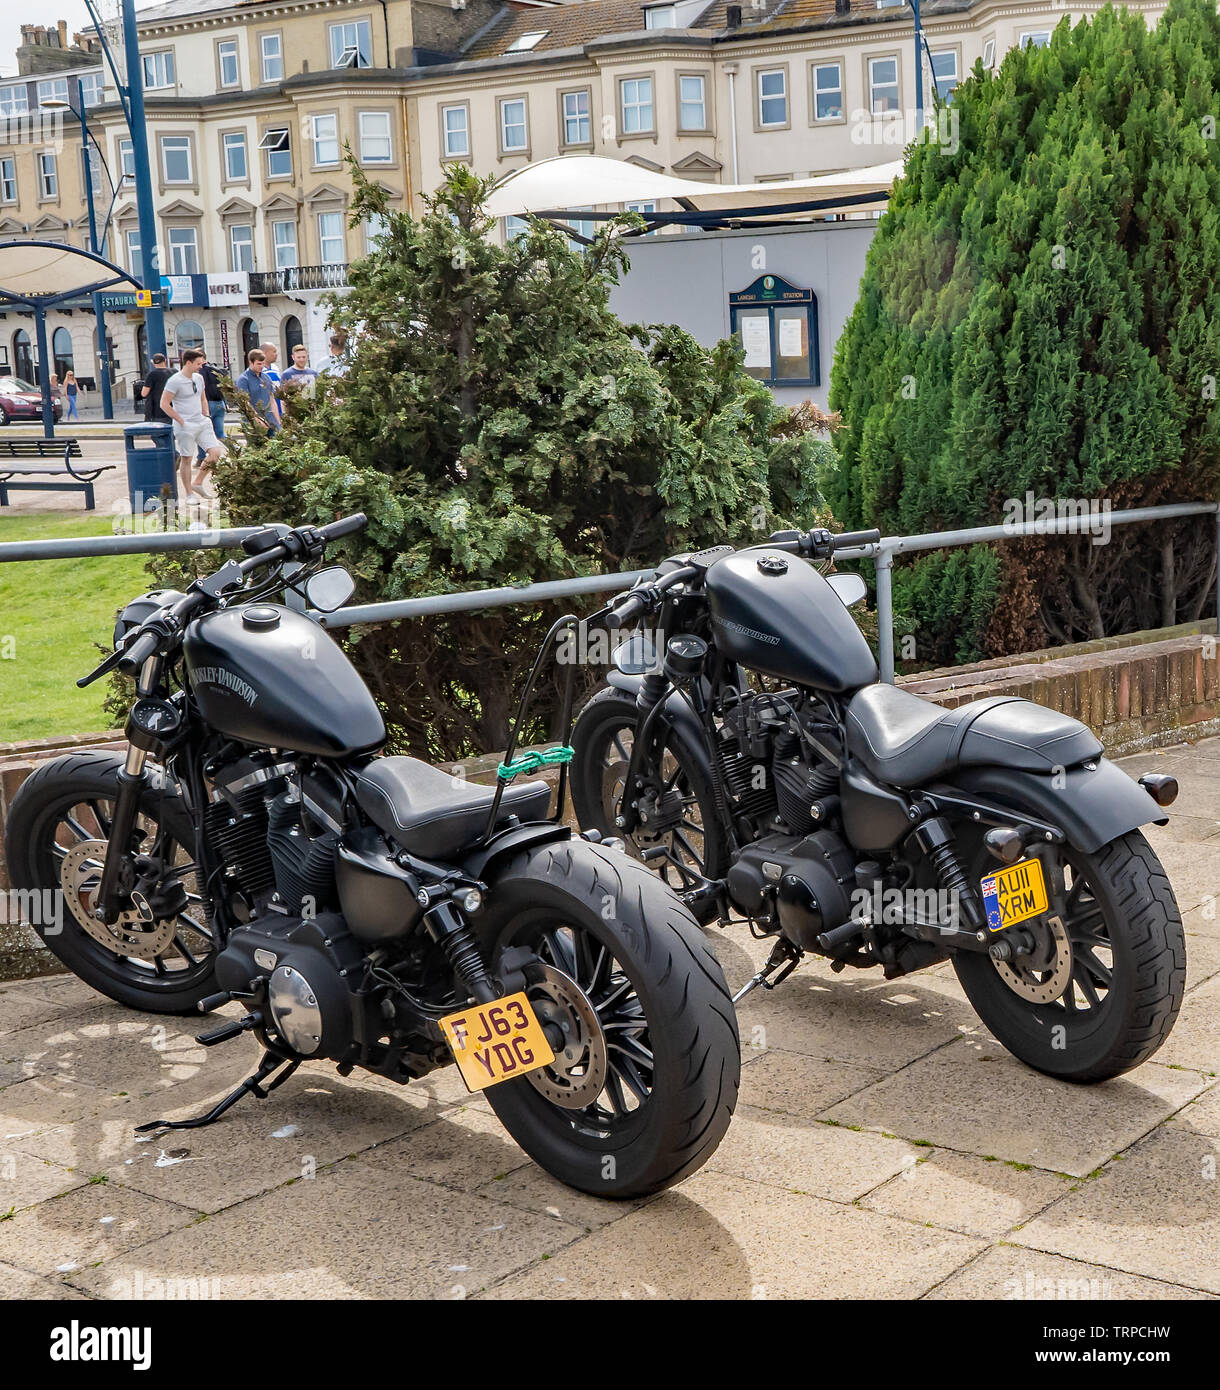 Harley Davidson motorcycles parked up along Great Yarmouth seafront on a sunny afternoon - Stock Image